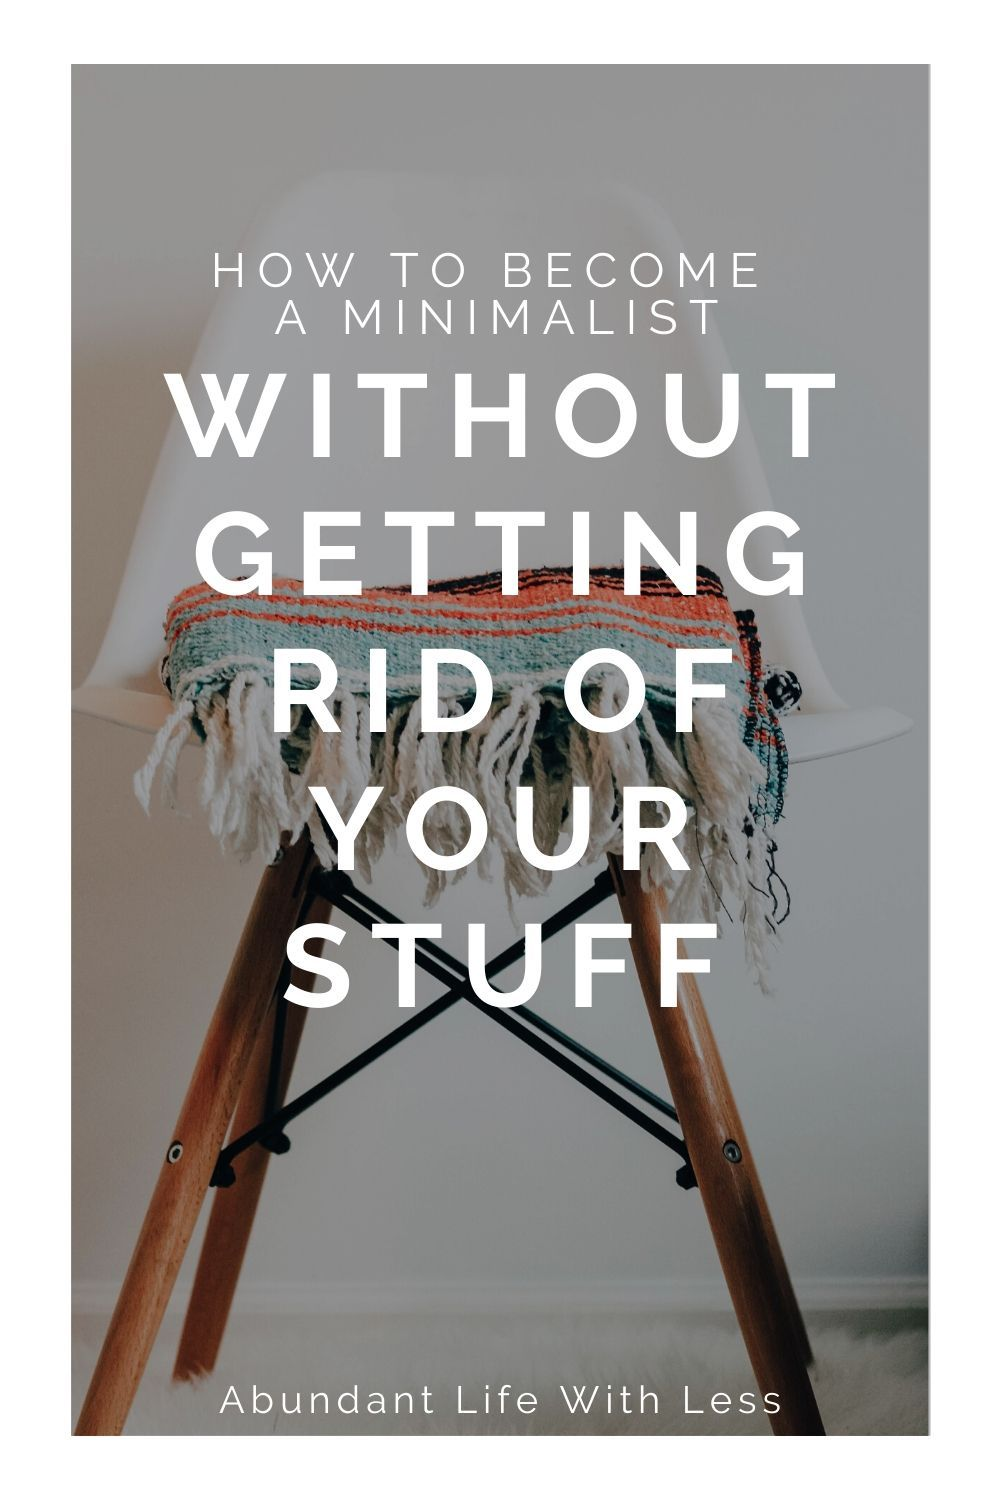 How to a Minimalist Without Getting Rid of Your